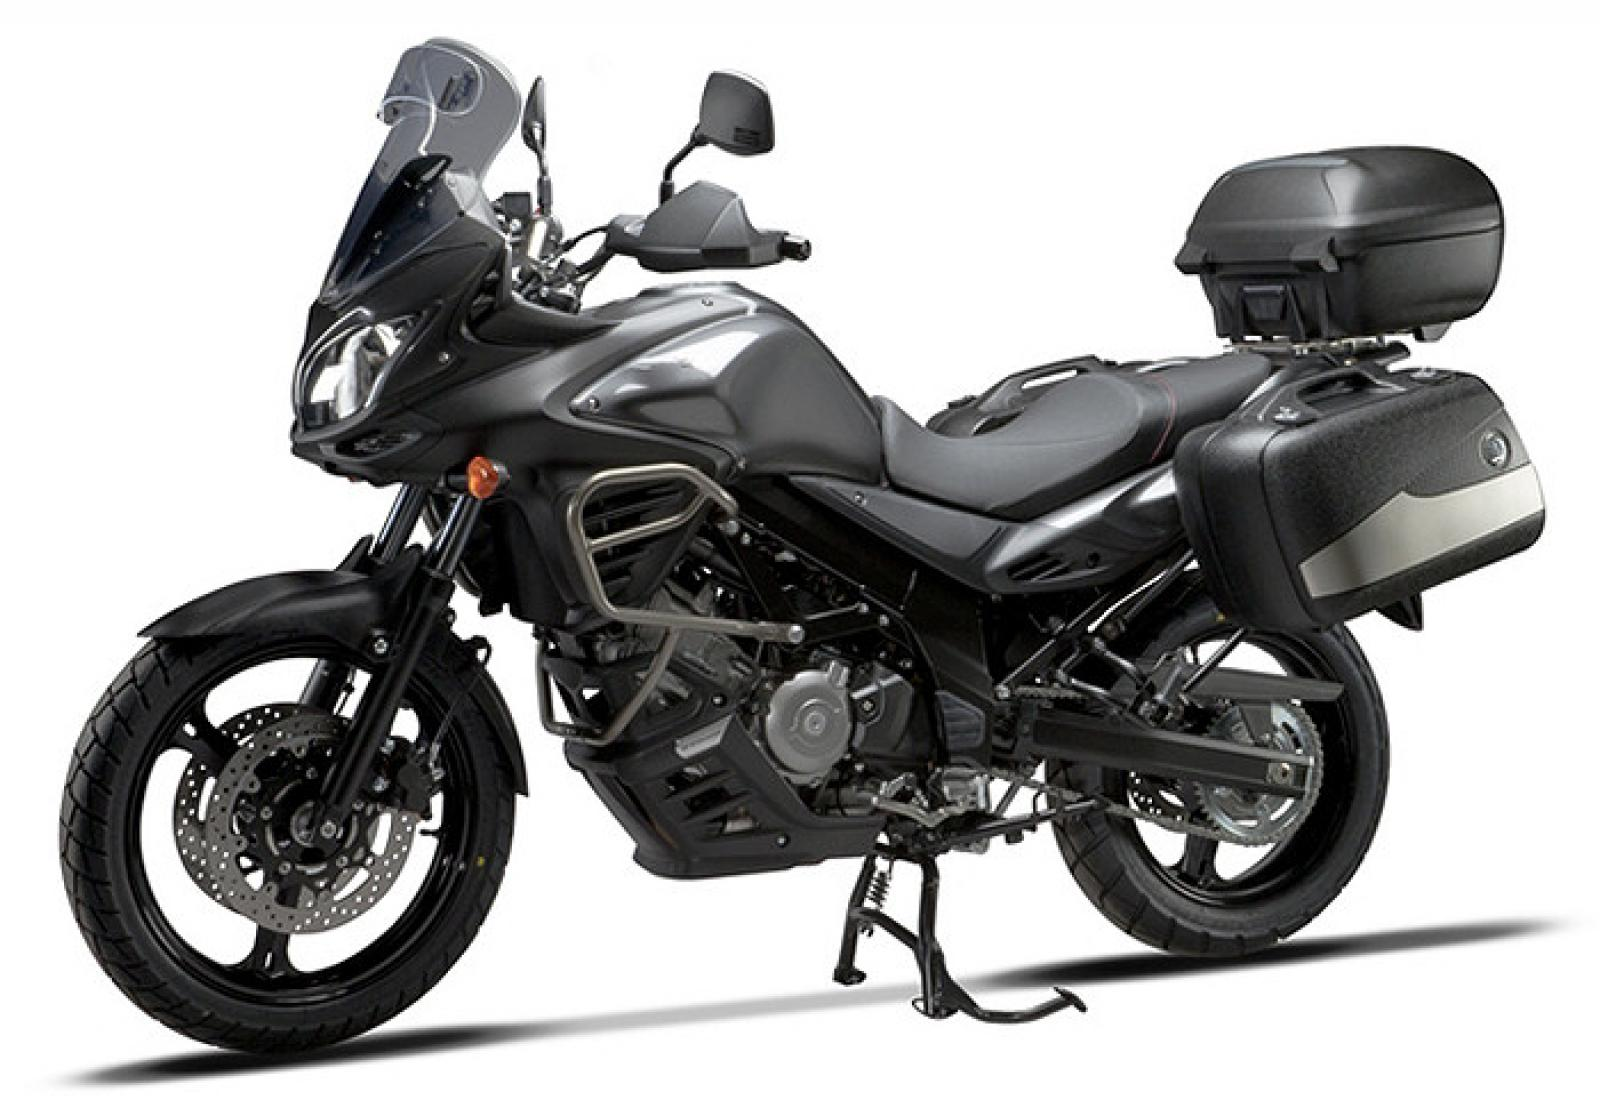 Suzuki V-Strom 650 ABS Grand Tourer #1